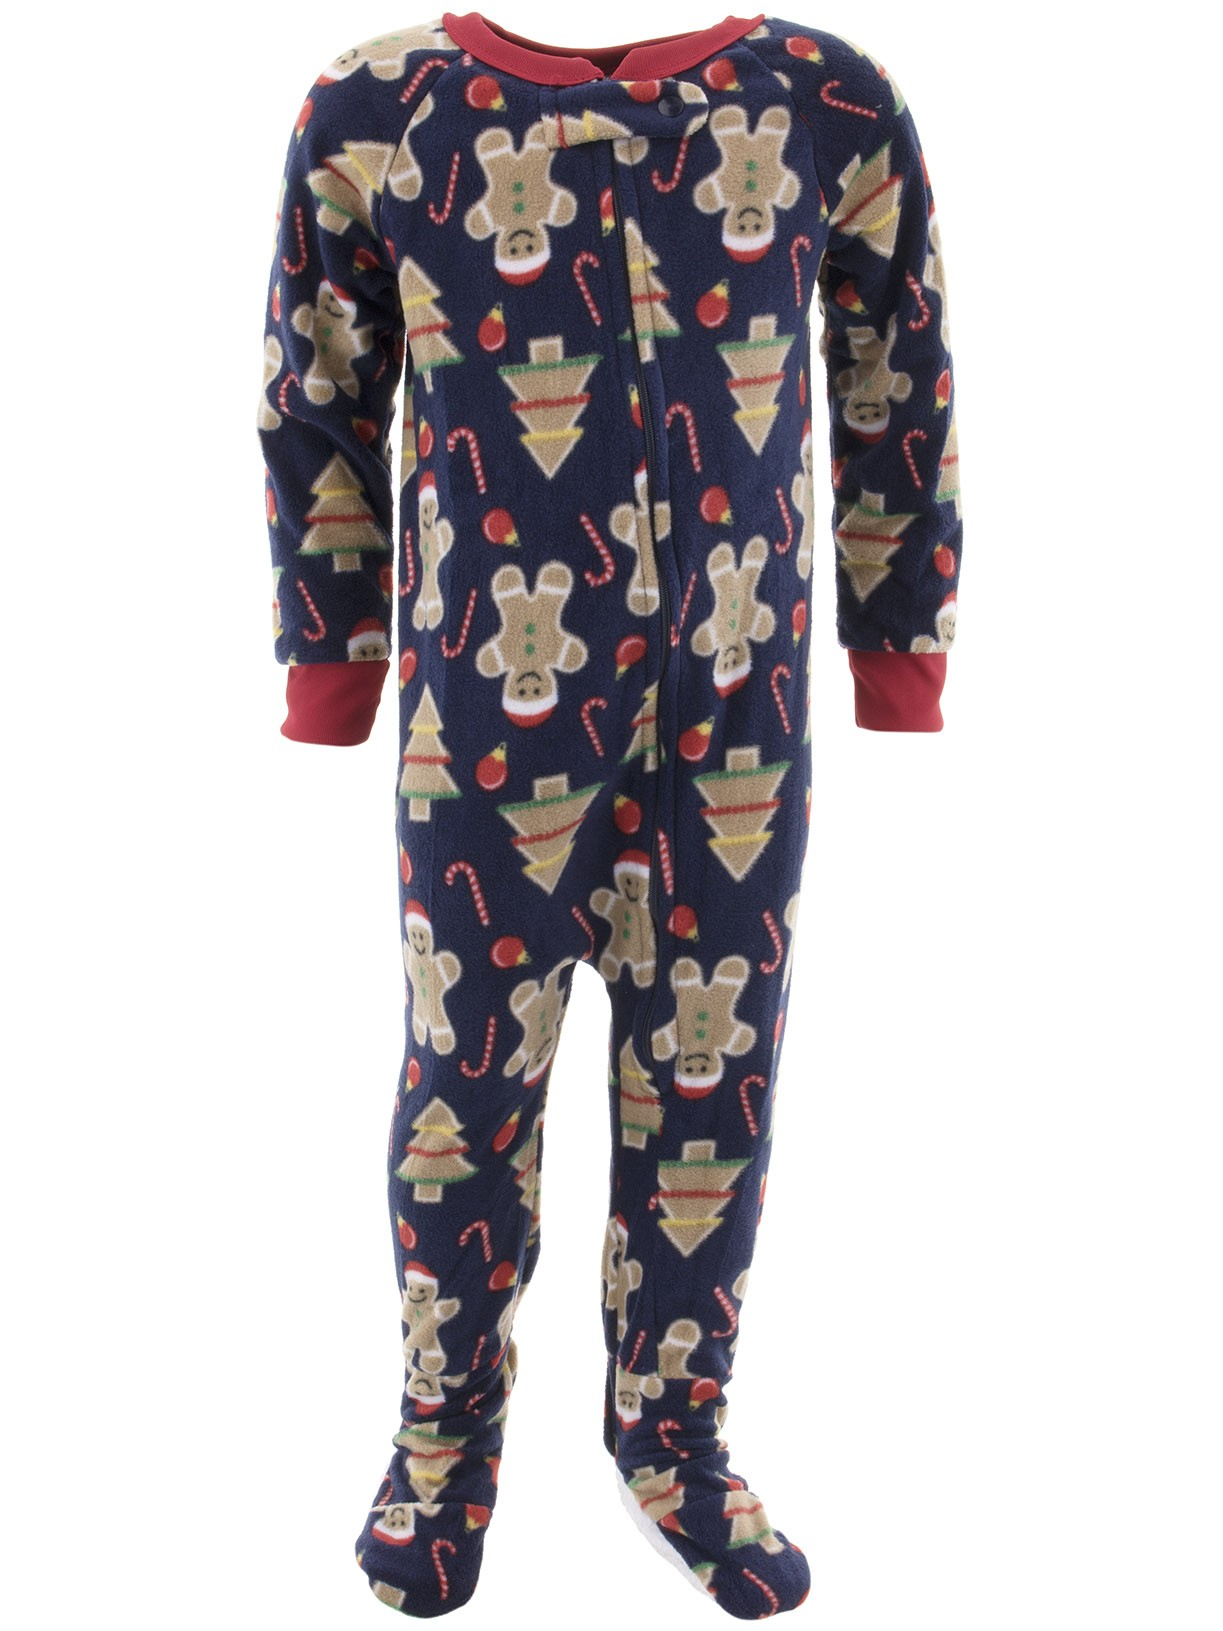 Mon Petit Boys Christmas Navy Footed Pajamas